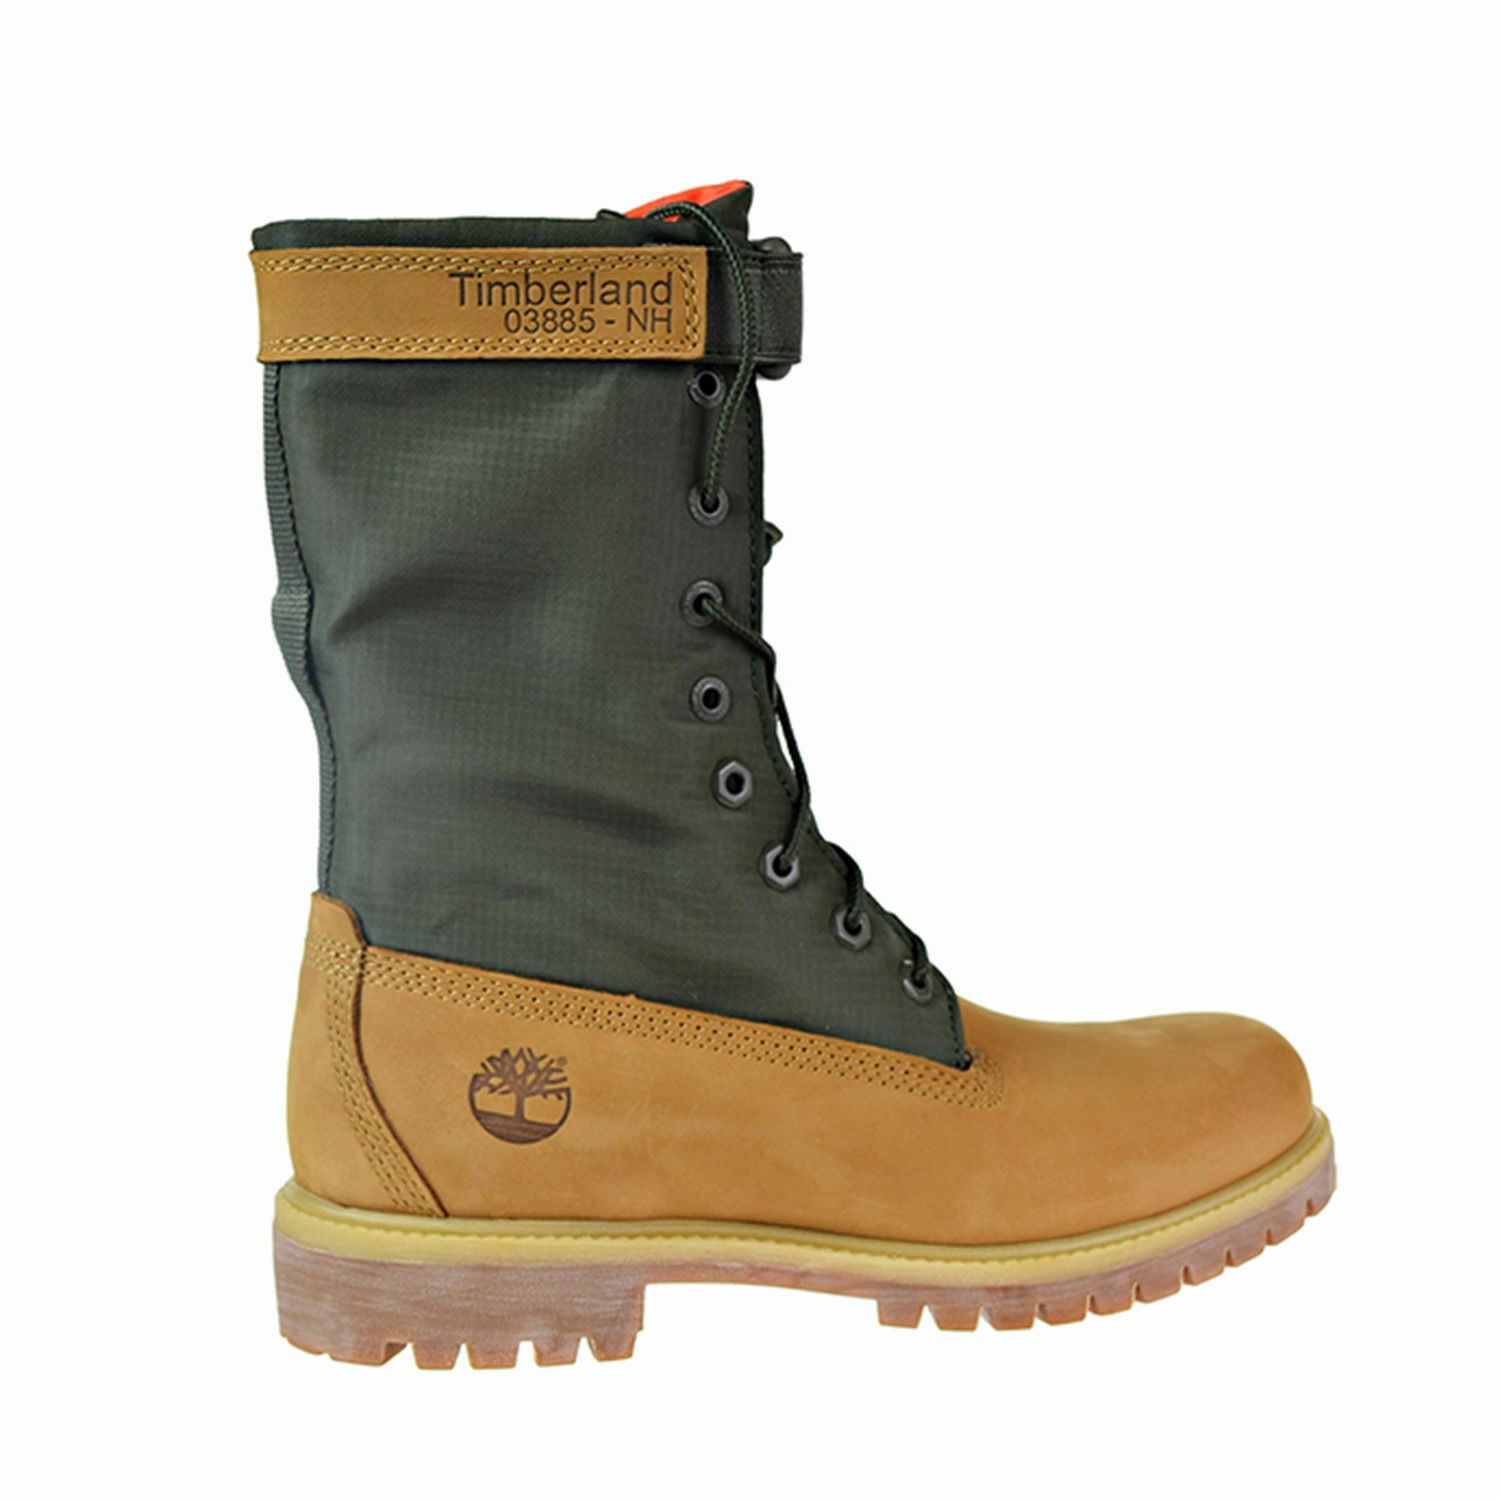 """Timberland 6"""" Premium Gaiter Men's Boots Size 8.5 Limited Release Wheat Green"""